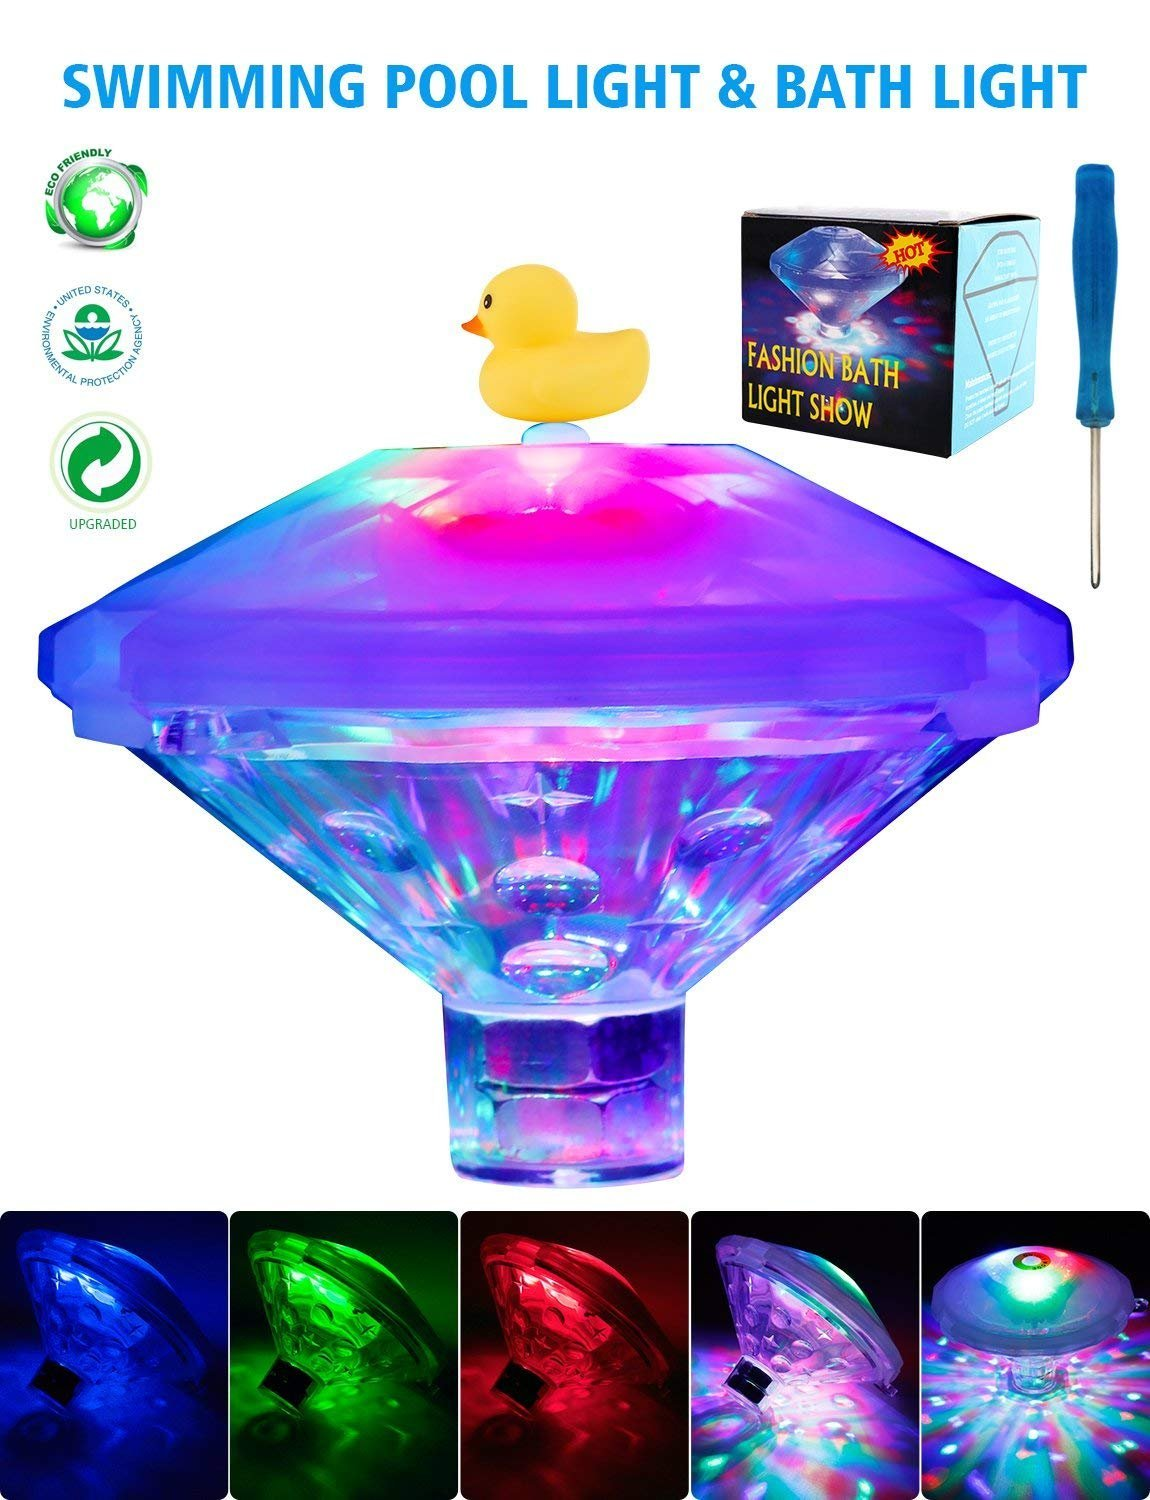 South Bend Swimming Pool lights,Baby Bath Lights,Colorful Bath Toys with 7 Lighting Modes,Waterproof Floating Pond Light/Bulb for Pool,Fountain or Party Decorations[NEW VERSION]